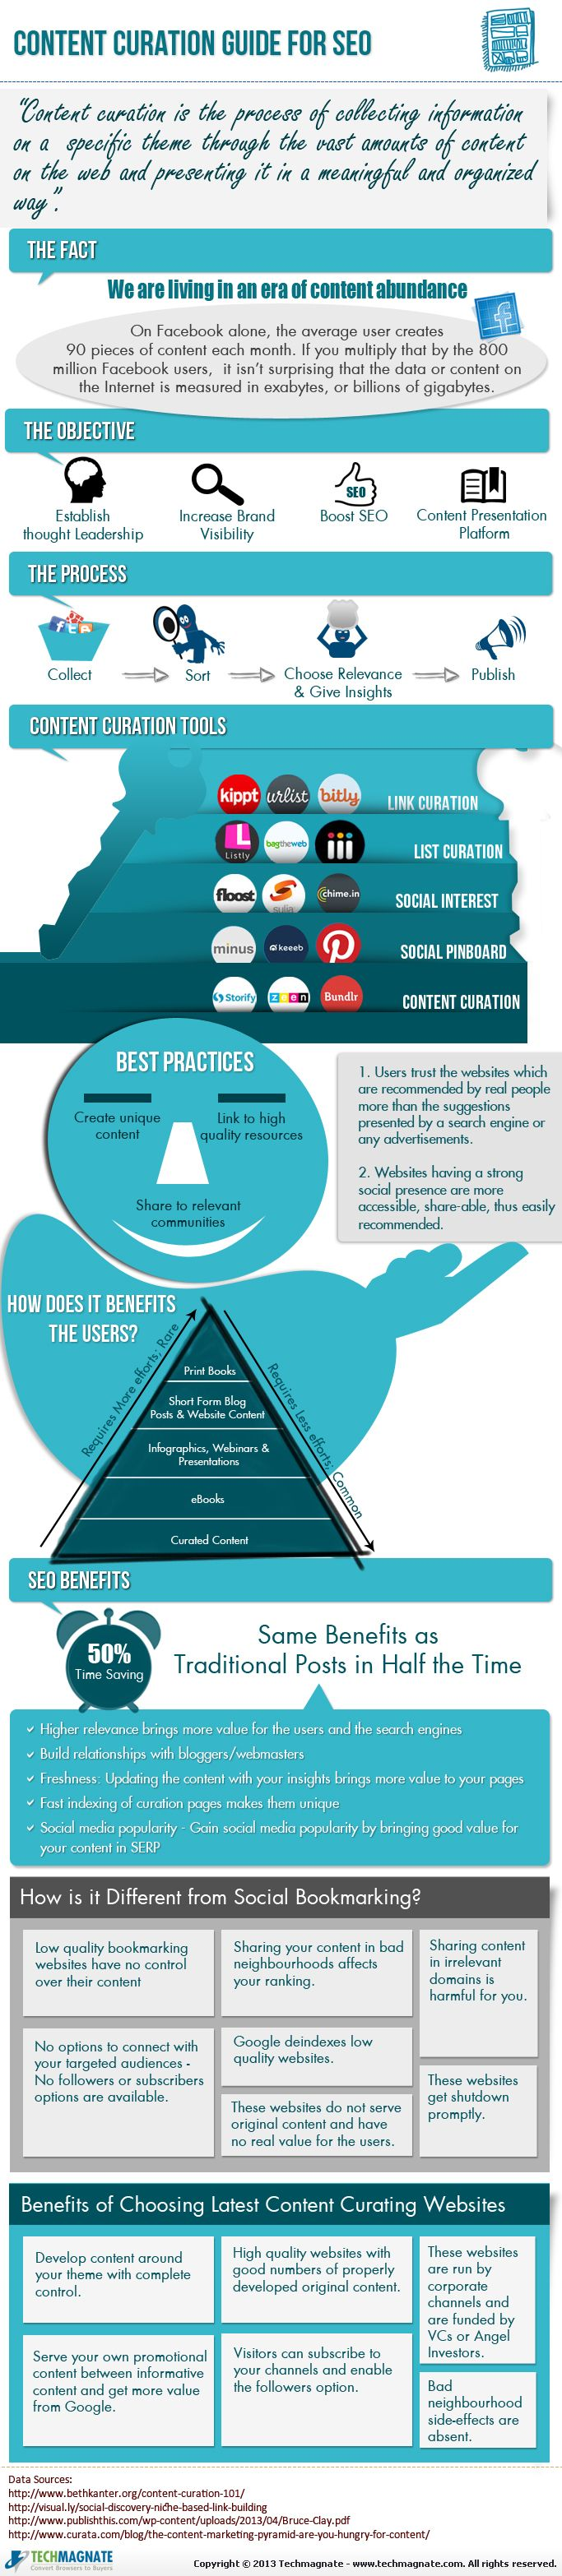 Content curation guide for seo #infografia #infographic #seo #marketing